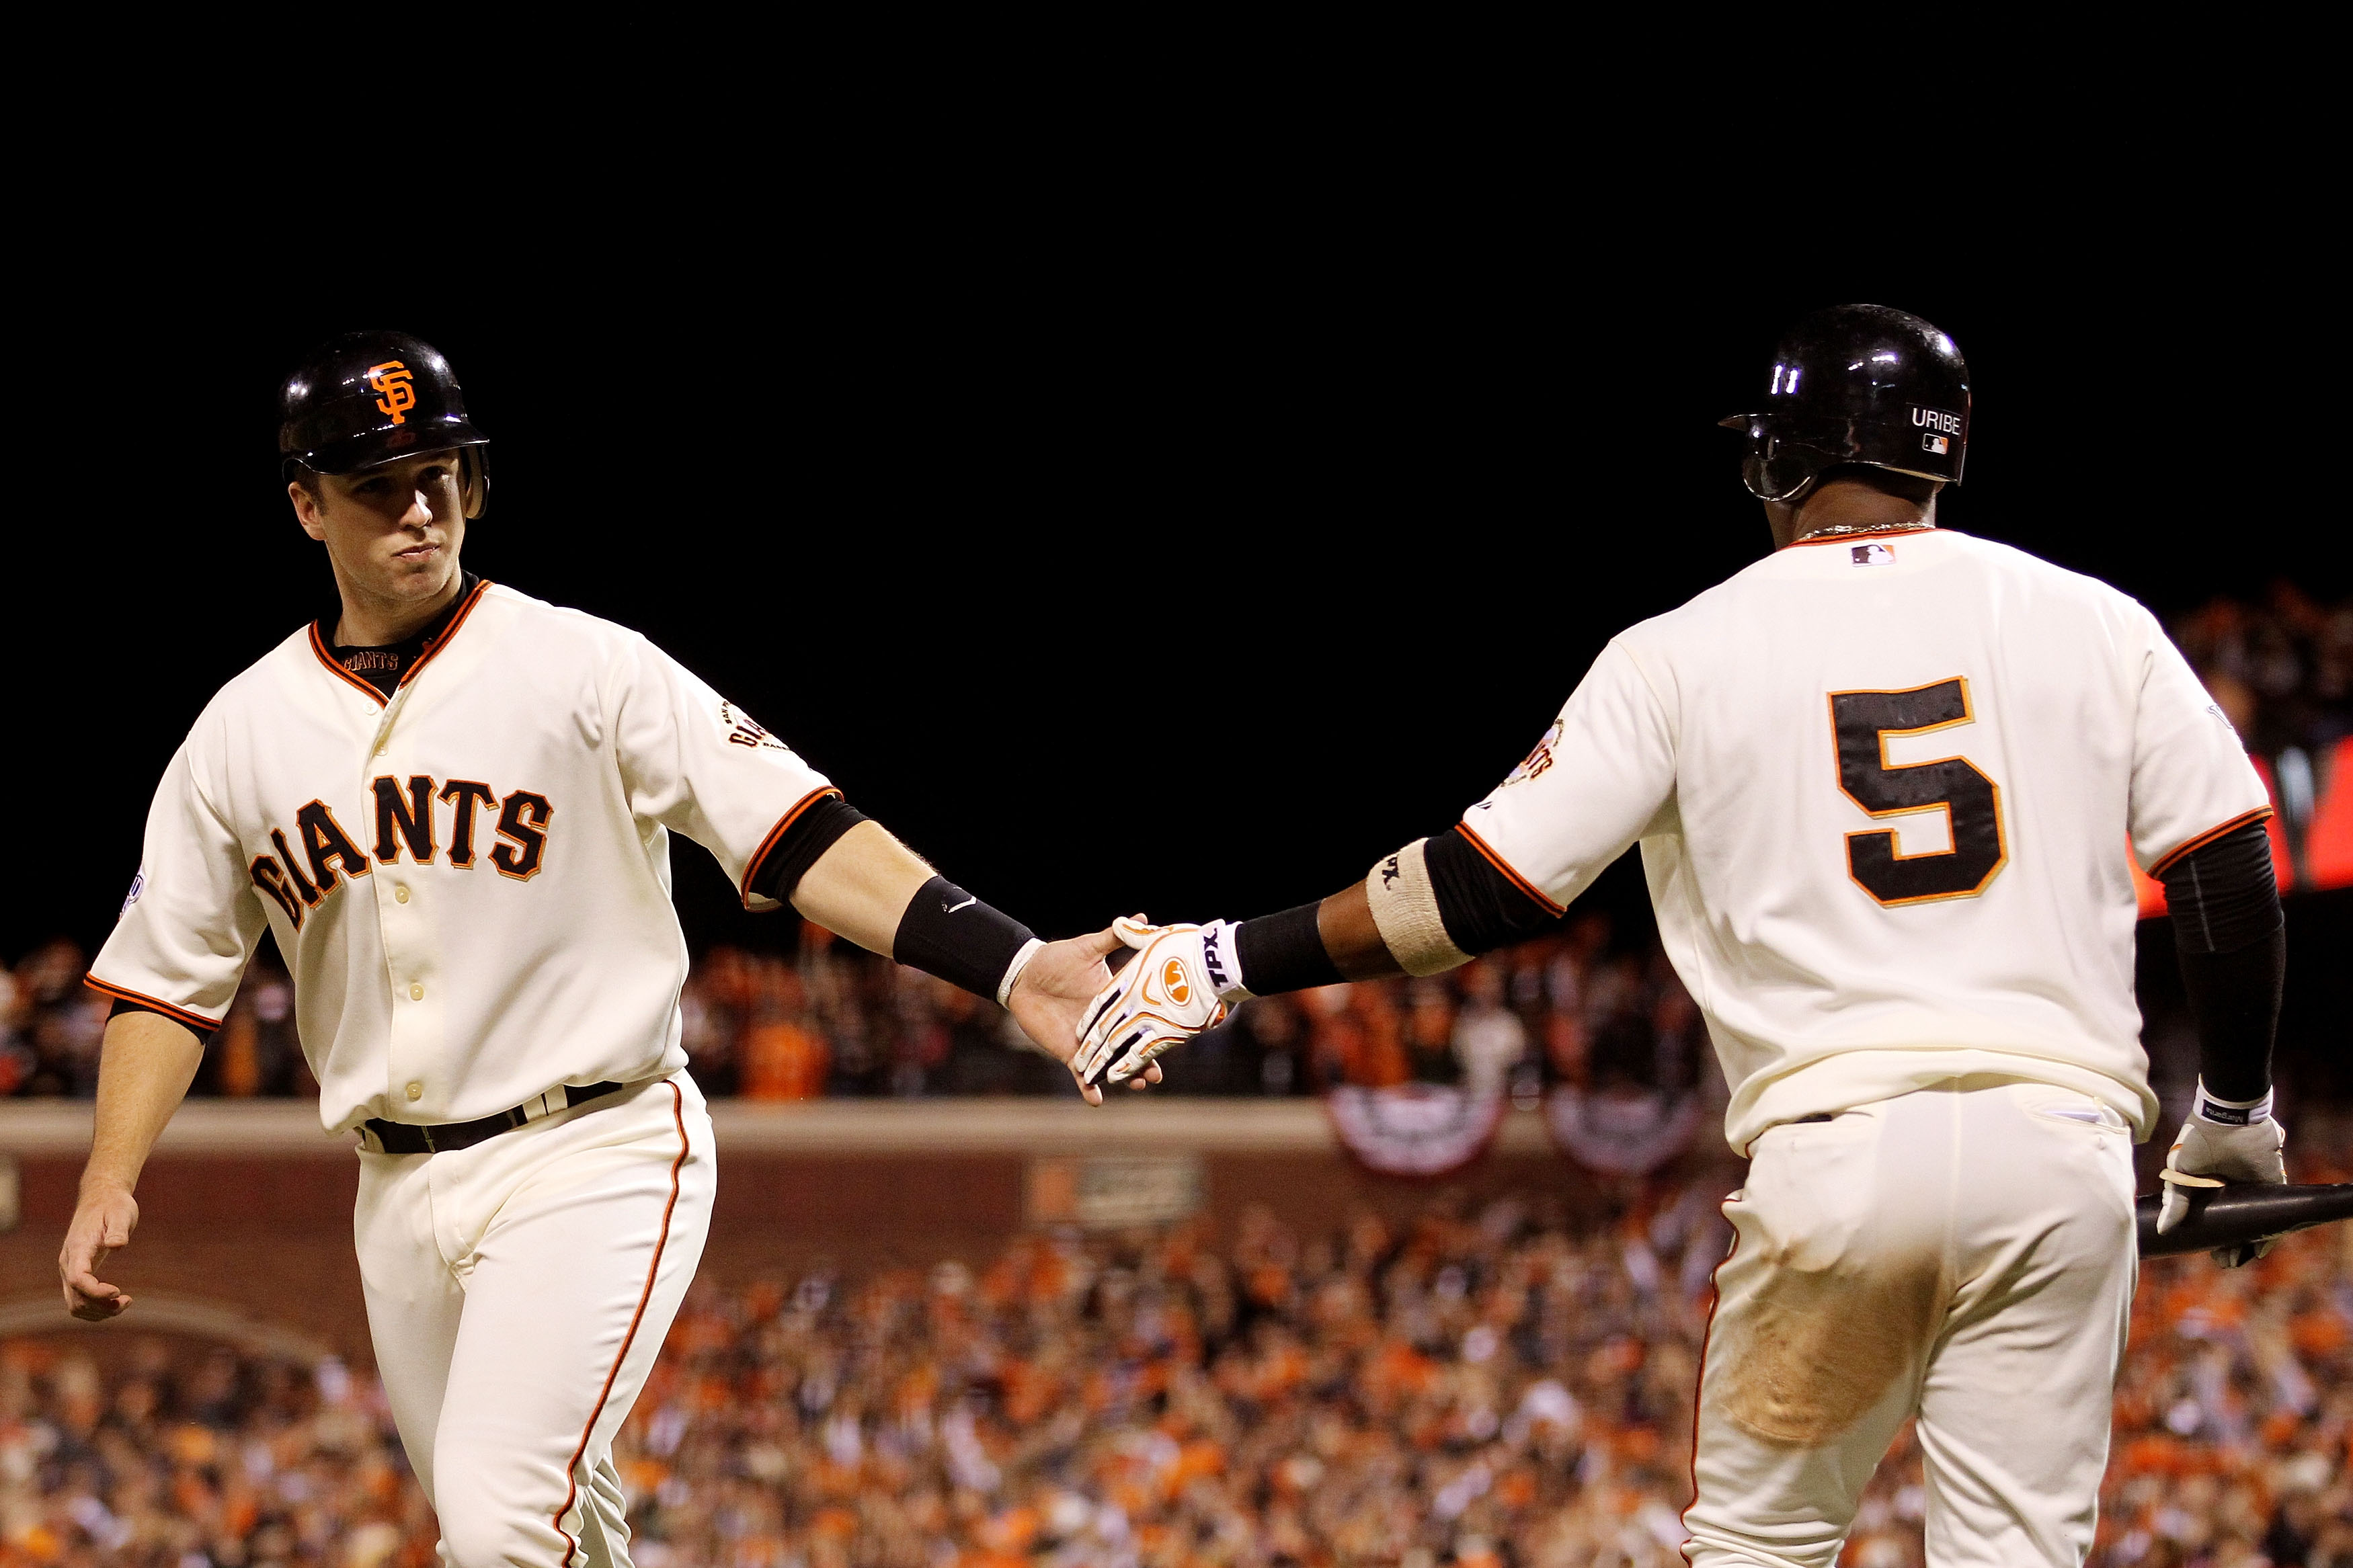 SAN FRANCISCO - OCTOBER 28:  Buster Posey #28 of the San Francisco Giants celebrates scoring a run with teammate Juan Uribe #5 in the eighth inning while taking on the Texas Rangers in Game Two of the 2010 MLB World Series at AT&T Park on October 28, 2010